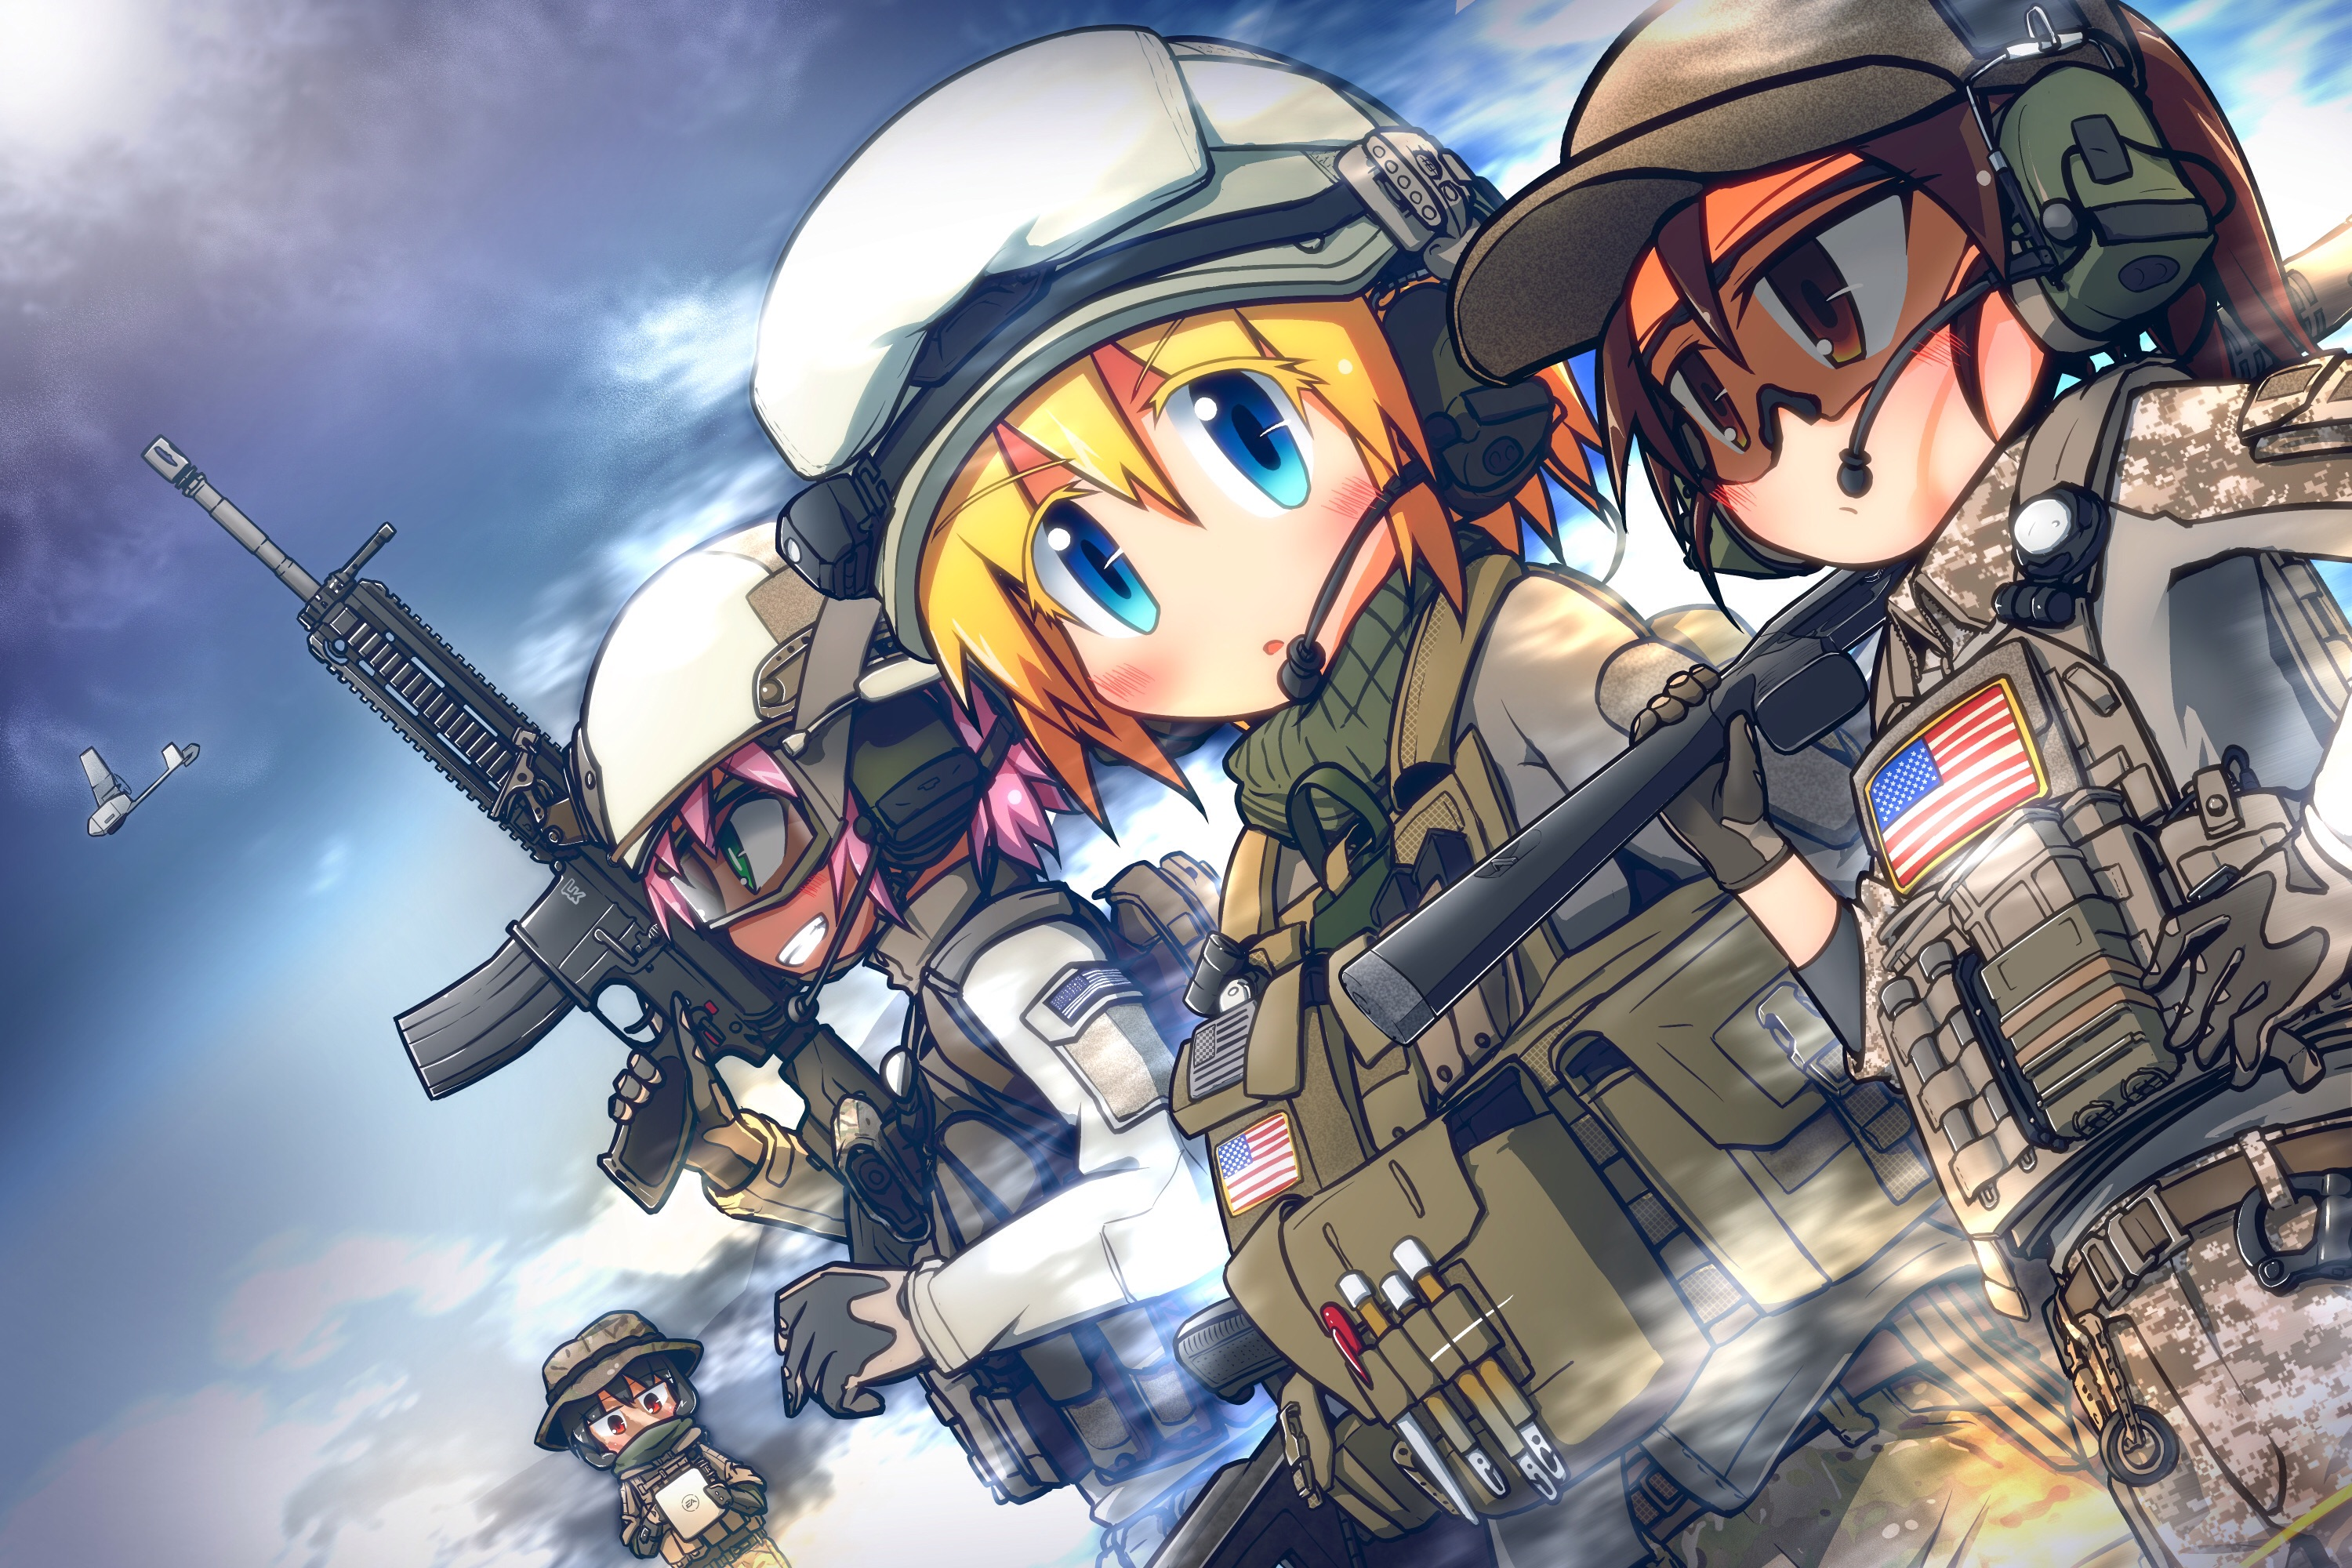 Squad up battlefield know your meme battlefield 4 battlefield 1 call of duty black ops ii squad anime mecha voltagebd Gallery